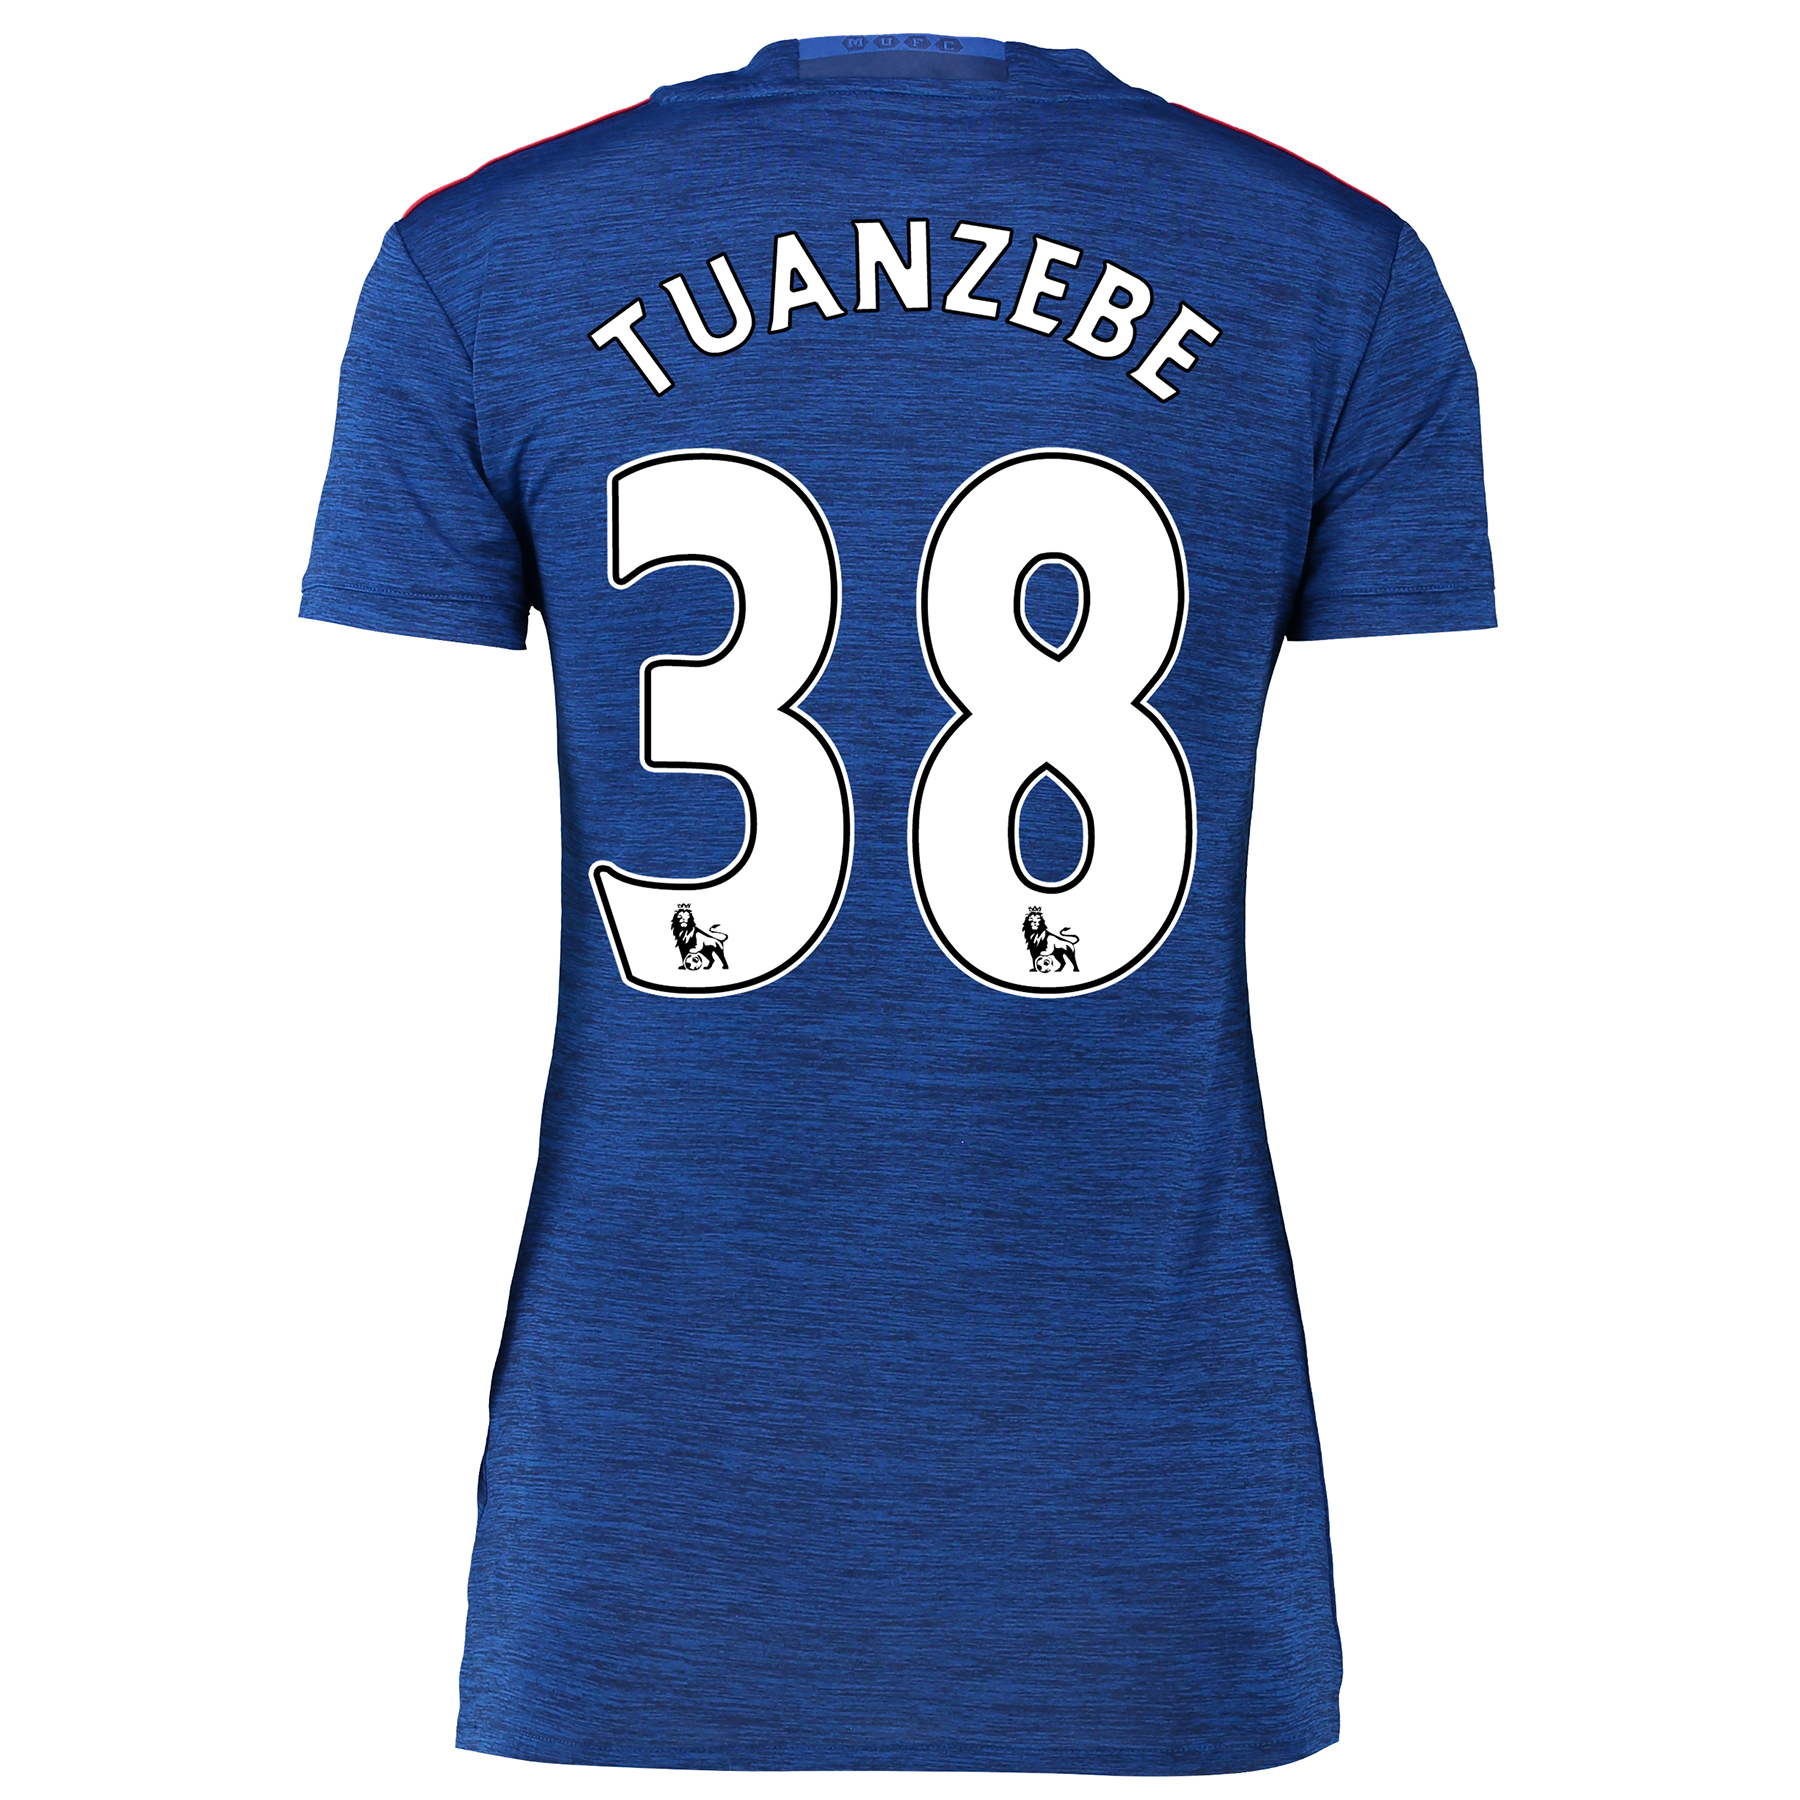 Manchester United Away Shirt 2016-17 - Womens with Tuanzebe 38 printin